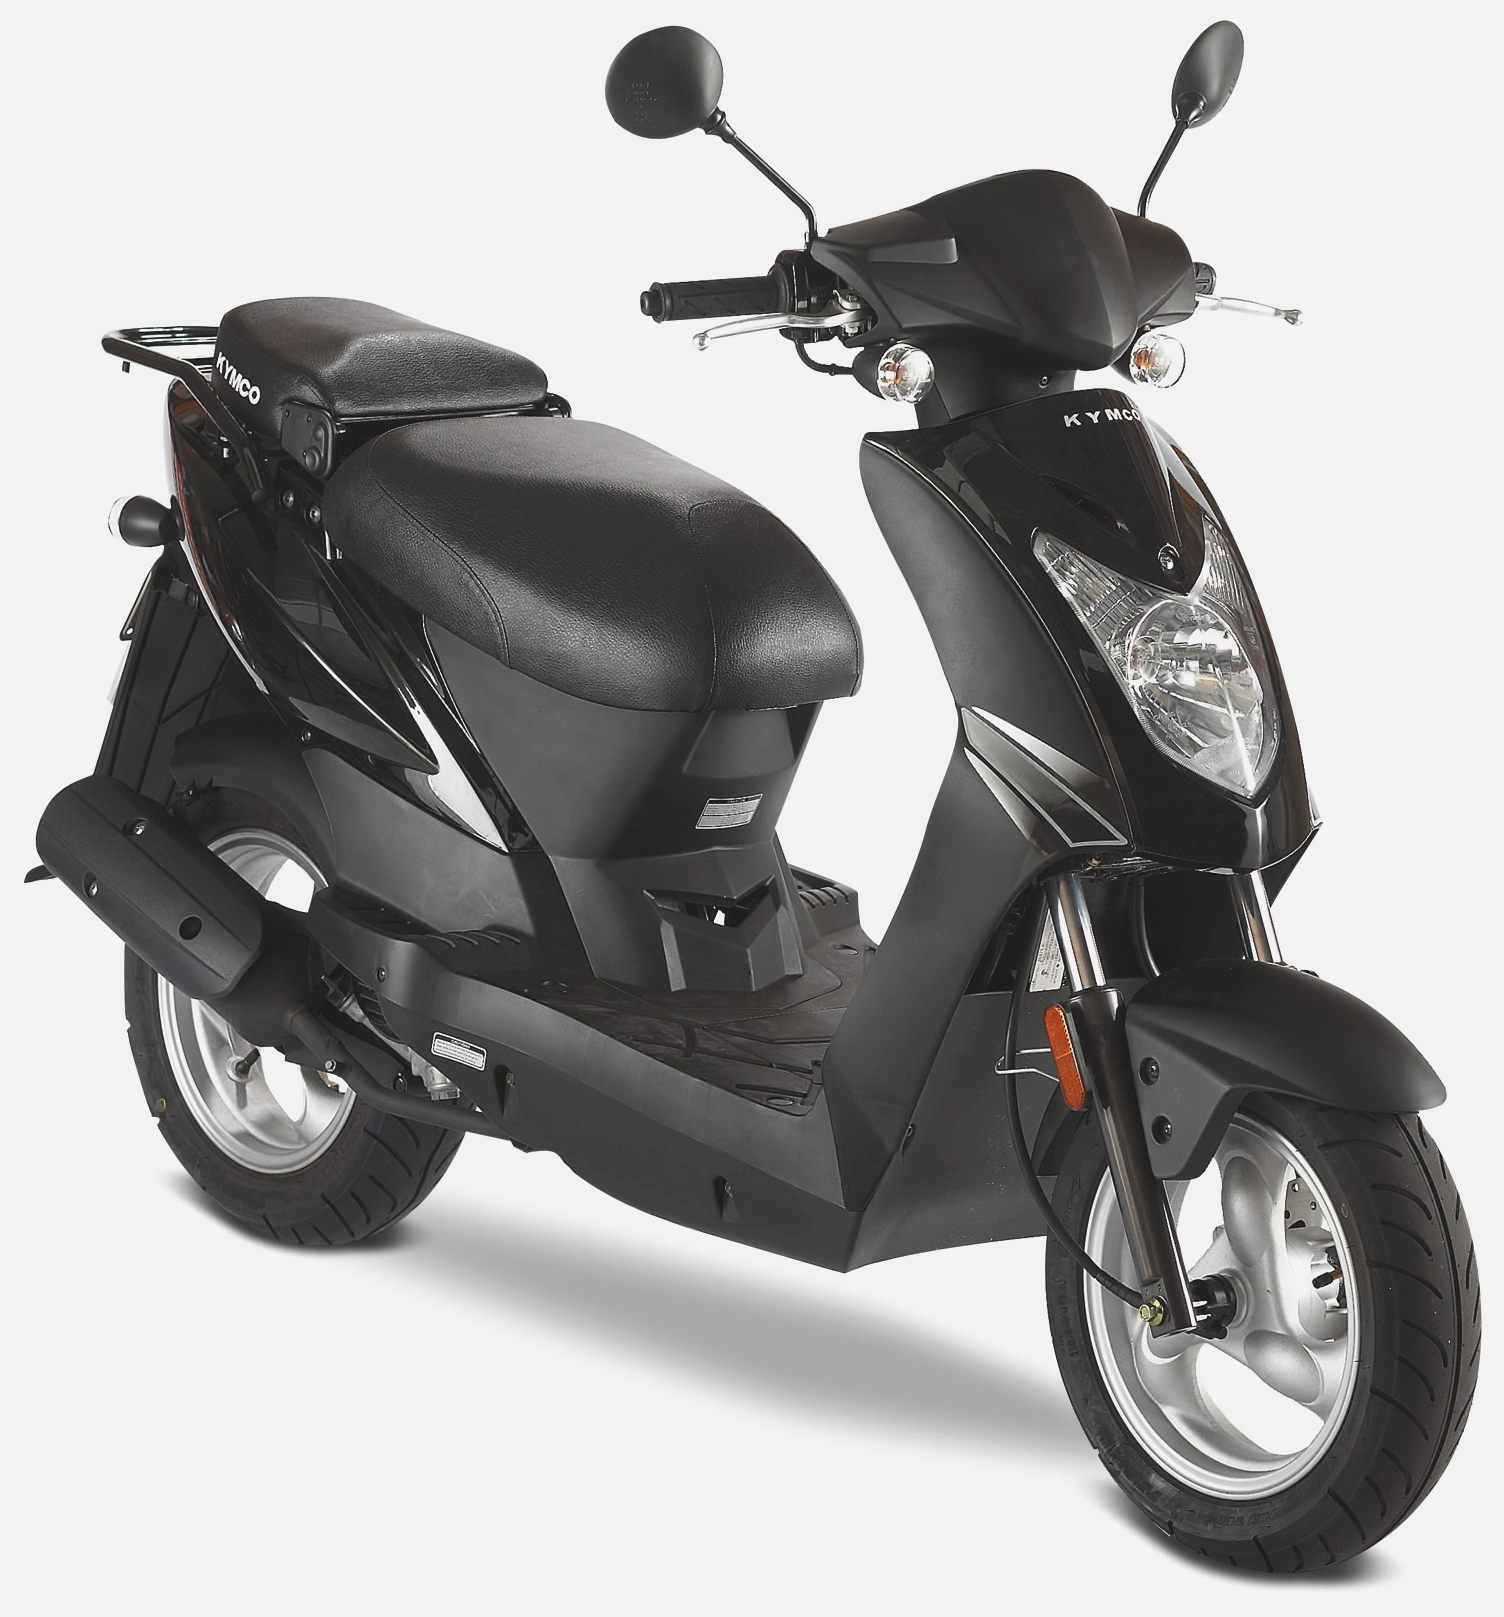 2007 Kymco Agility 50 Pics Specs And Information